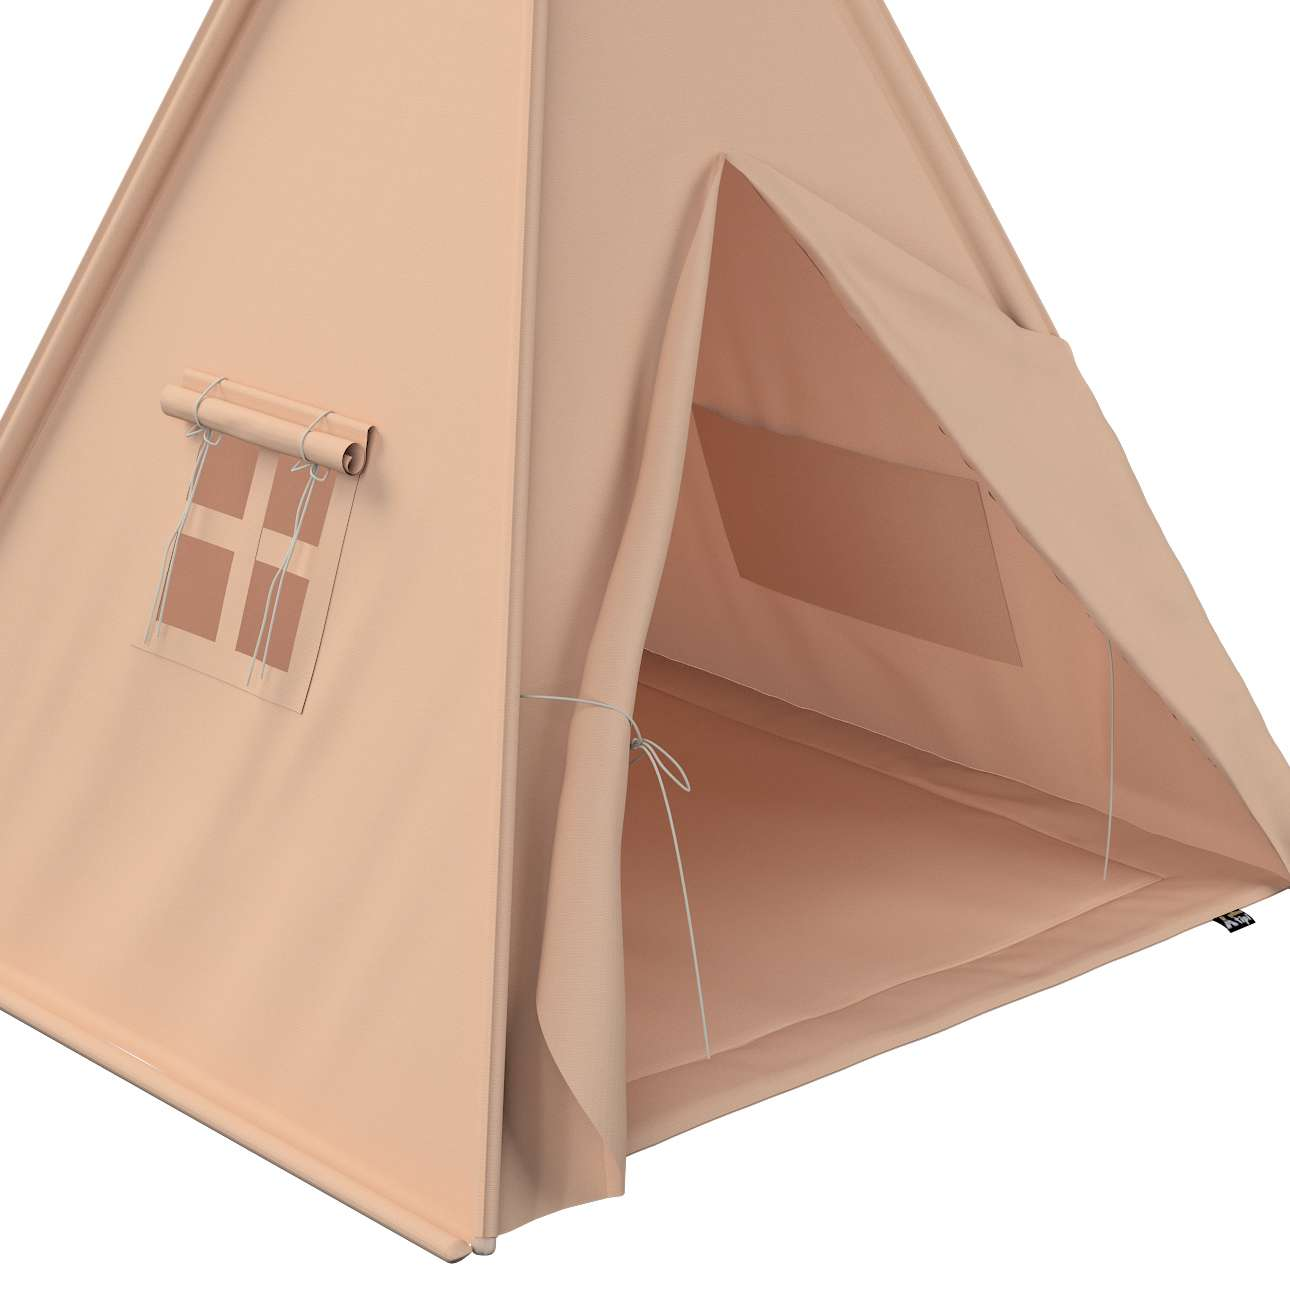 Tepee mat in collection Cotton Story, fabric: 702-01